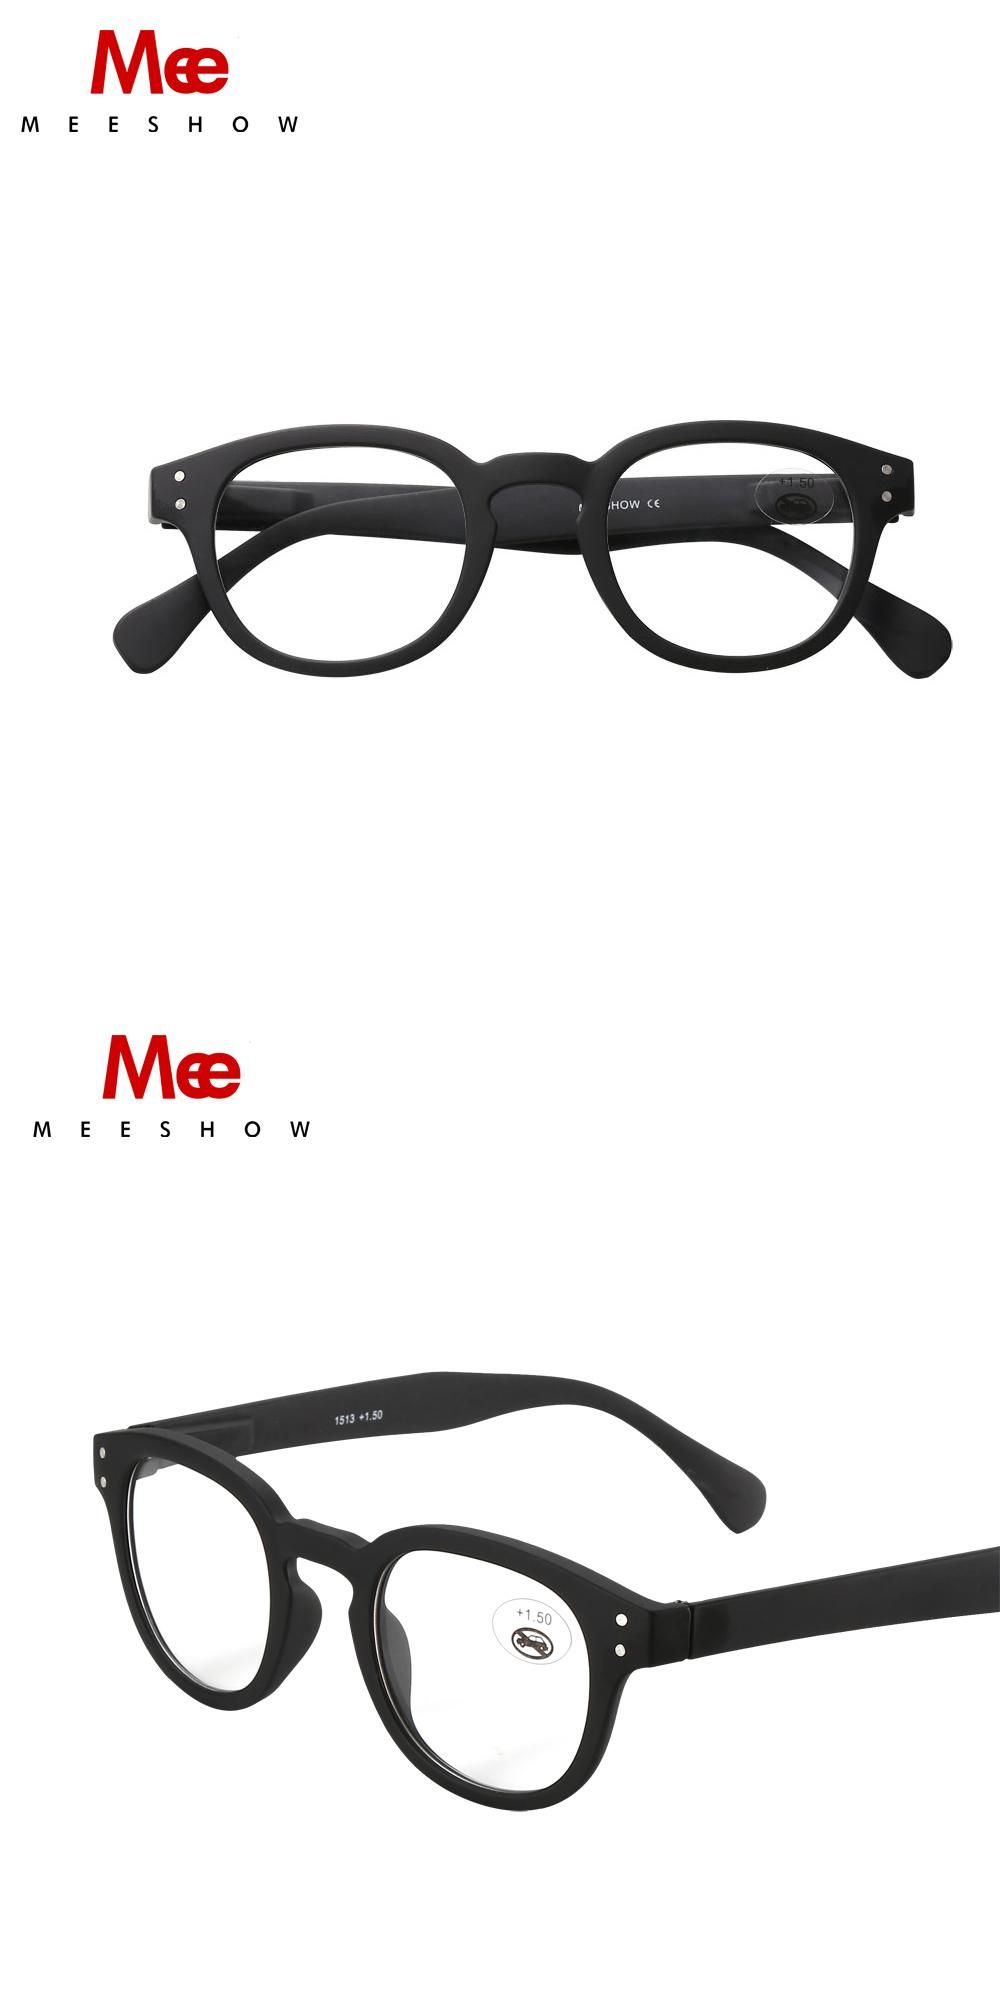 ae4b8c9050 2018 MEESHOW Europe style hot sales Men women eyeglasses quality optiker  brille with customized lens 1513